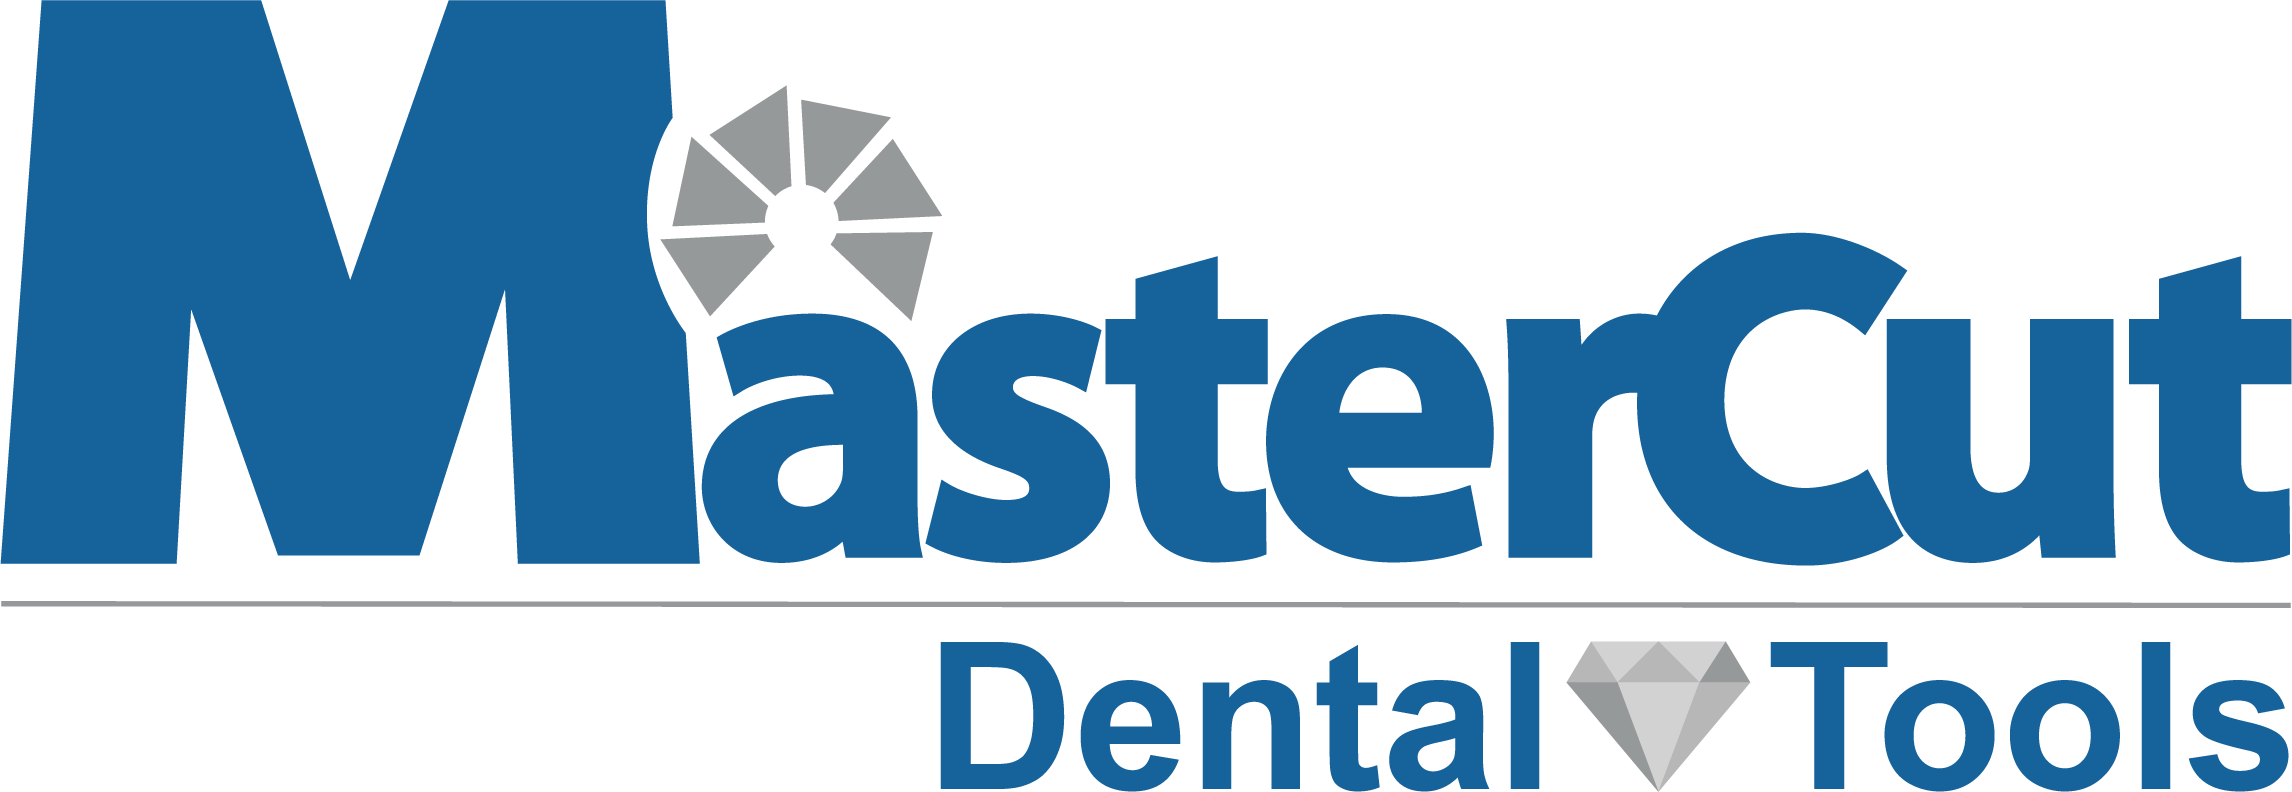 Mastercut Dental Logo